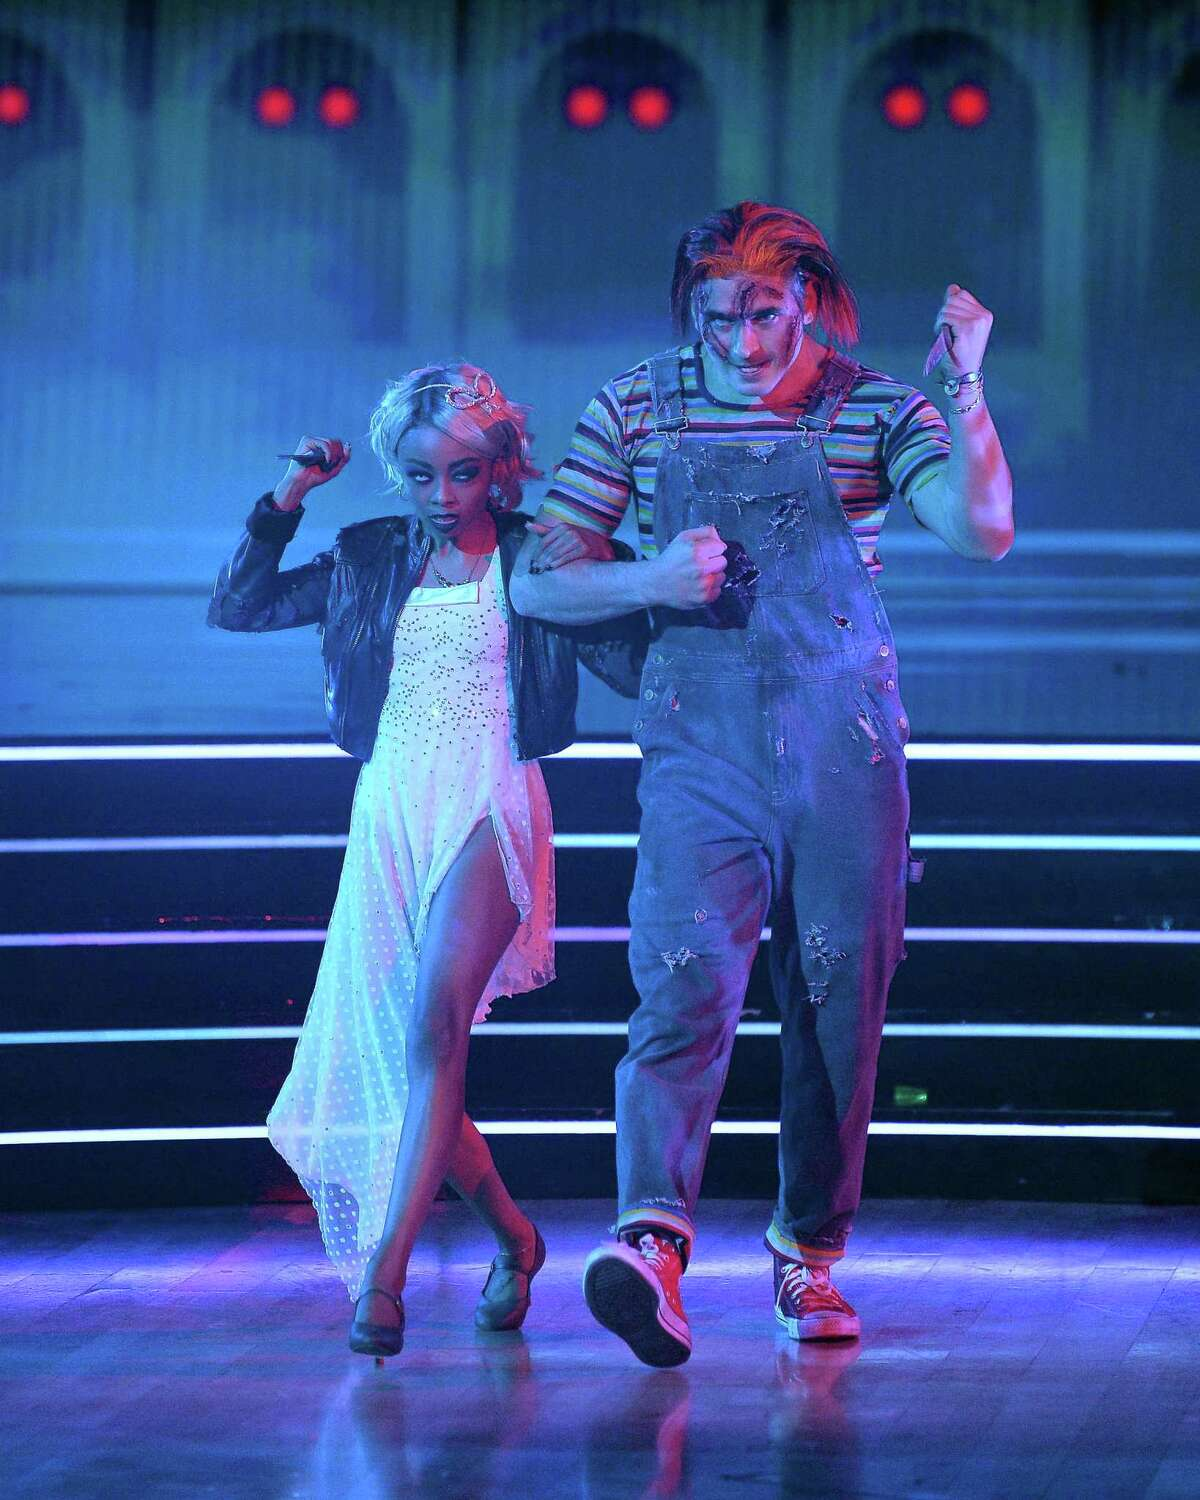 Skai Jackson: Pictured here with her Dancing With the Stars partner Alan Bersten, Skai dressed up as Tiffany Valentine from the Chucky movies.